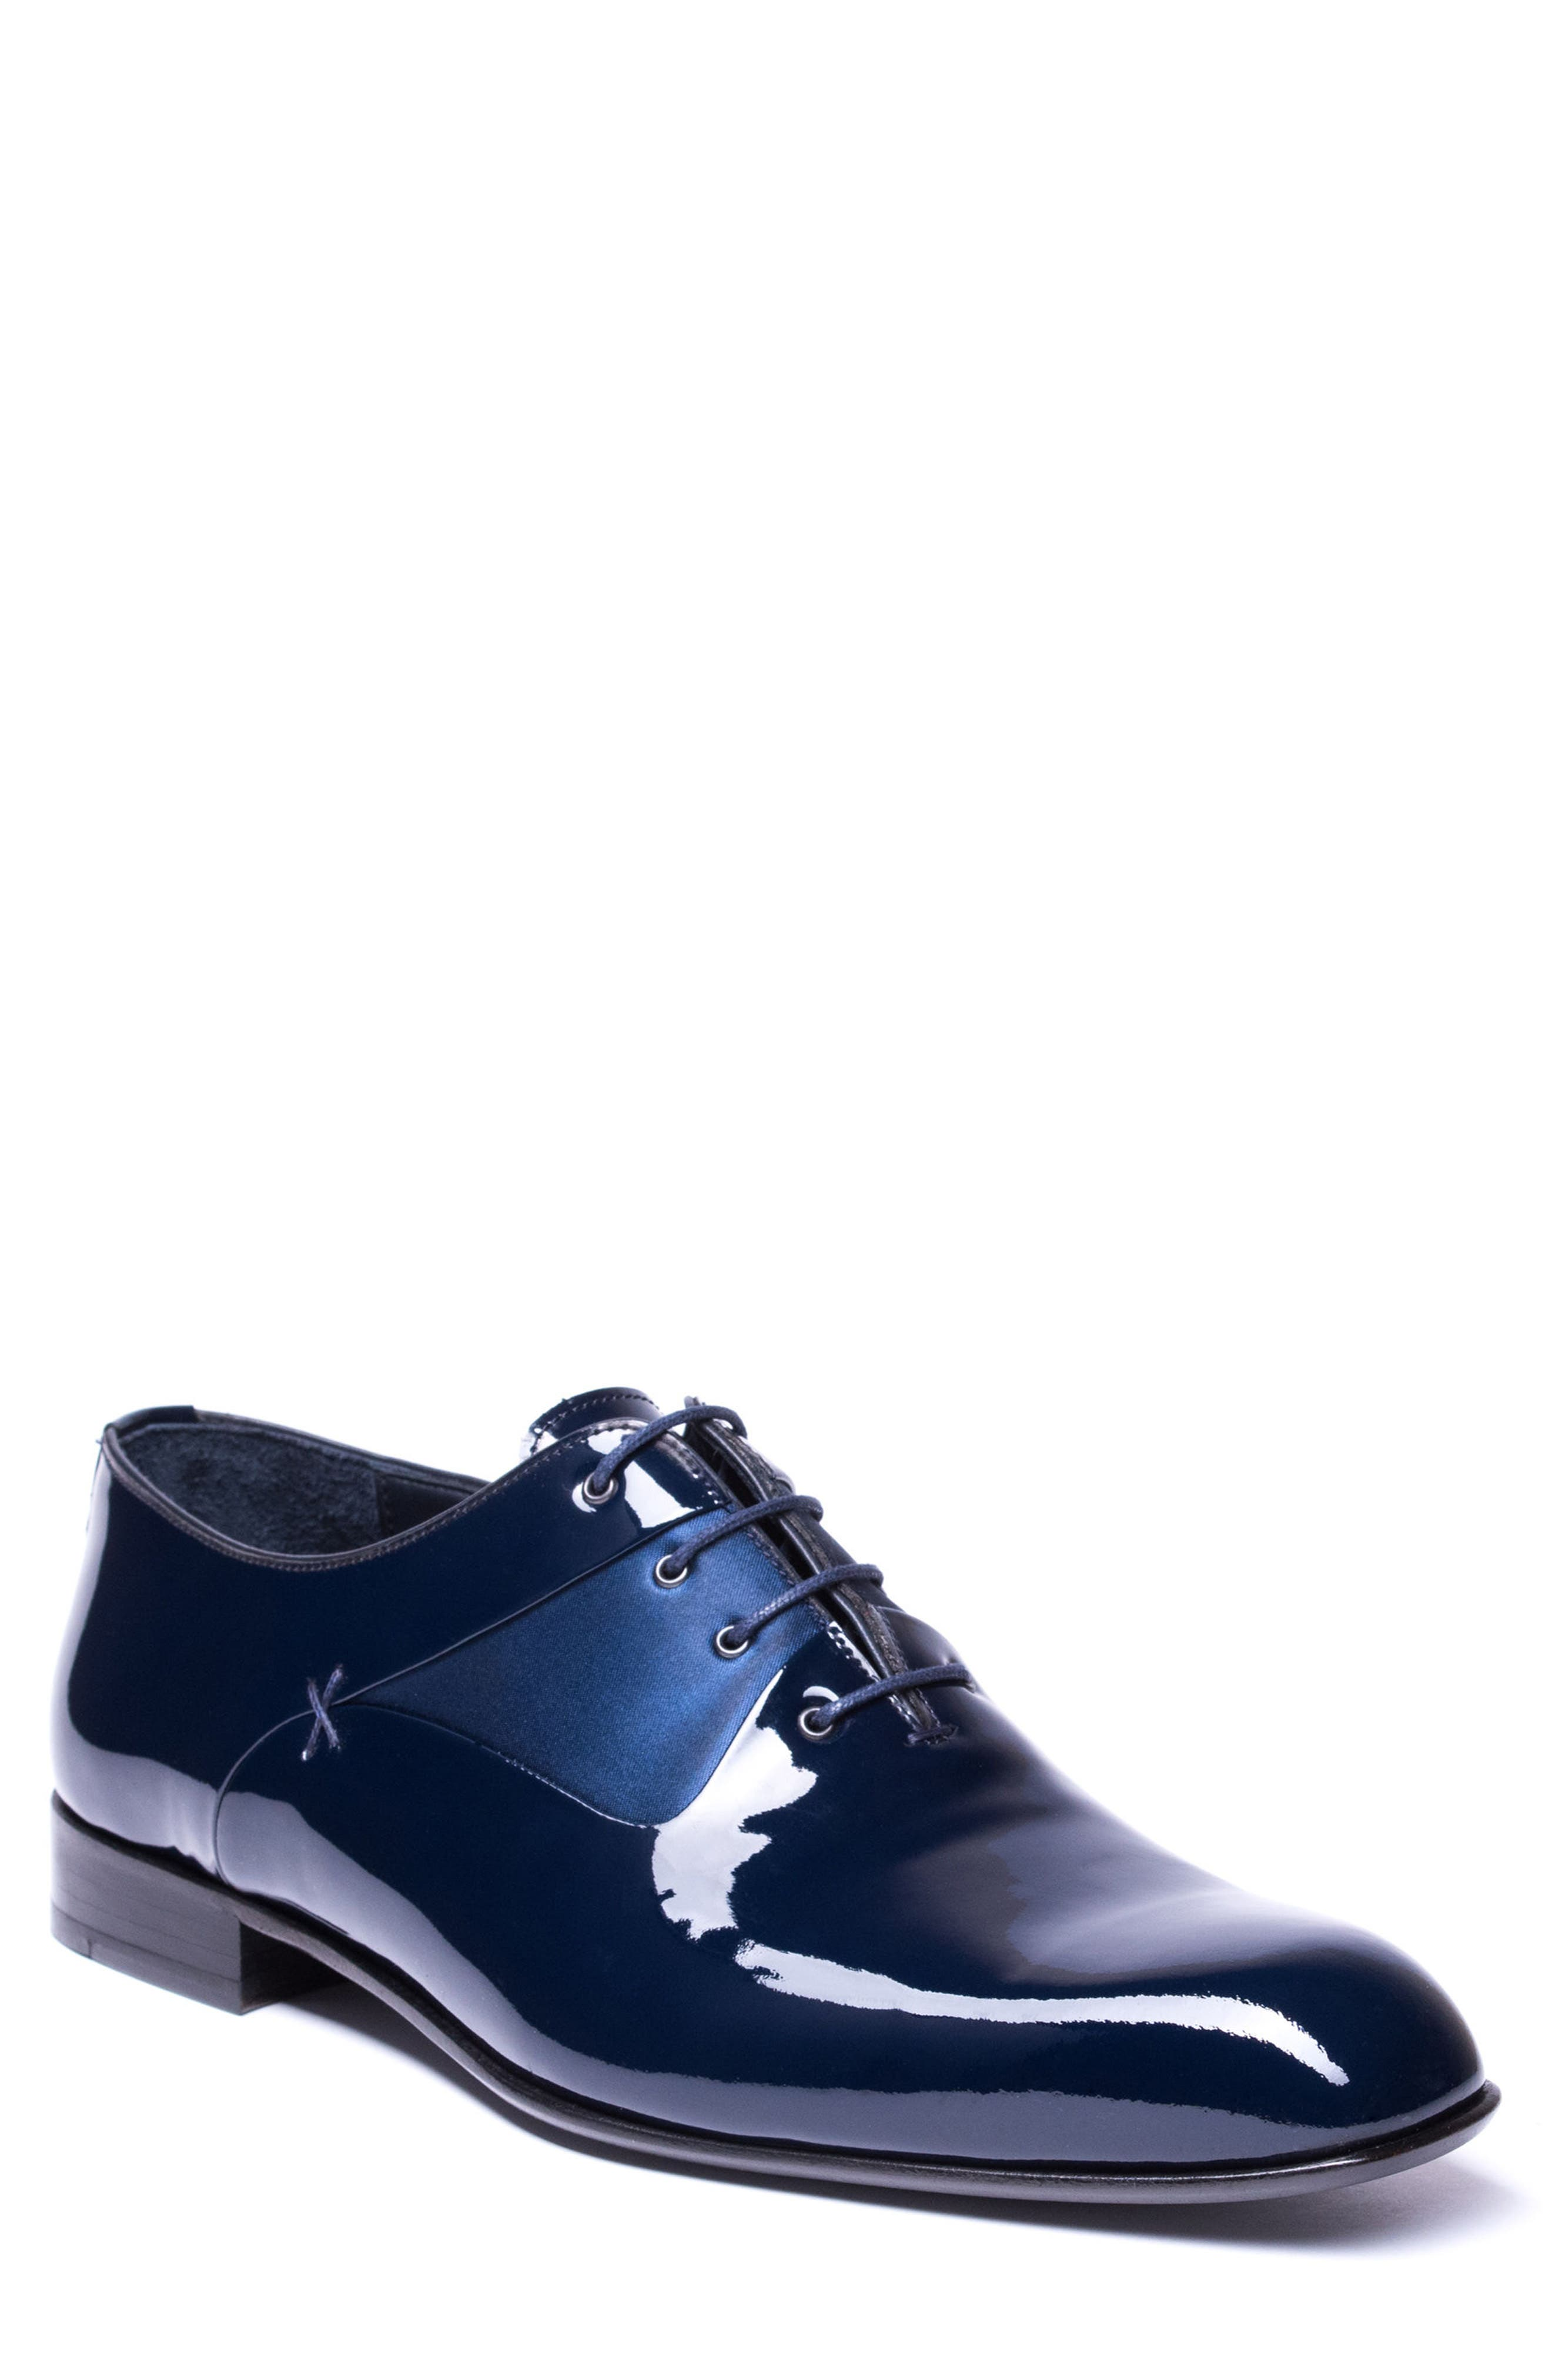 Main Image - Jared Lang Matteo Plain Toe Oxford (Men)